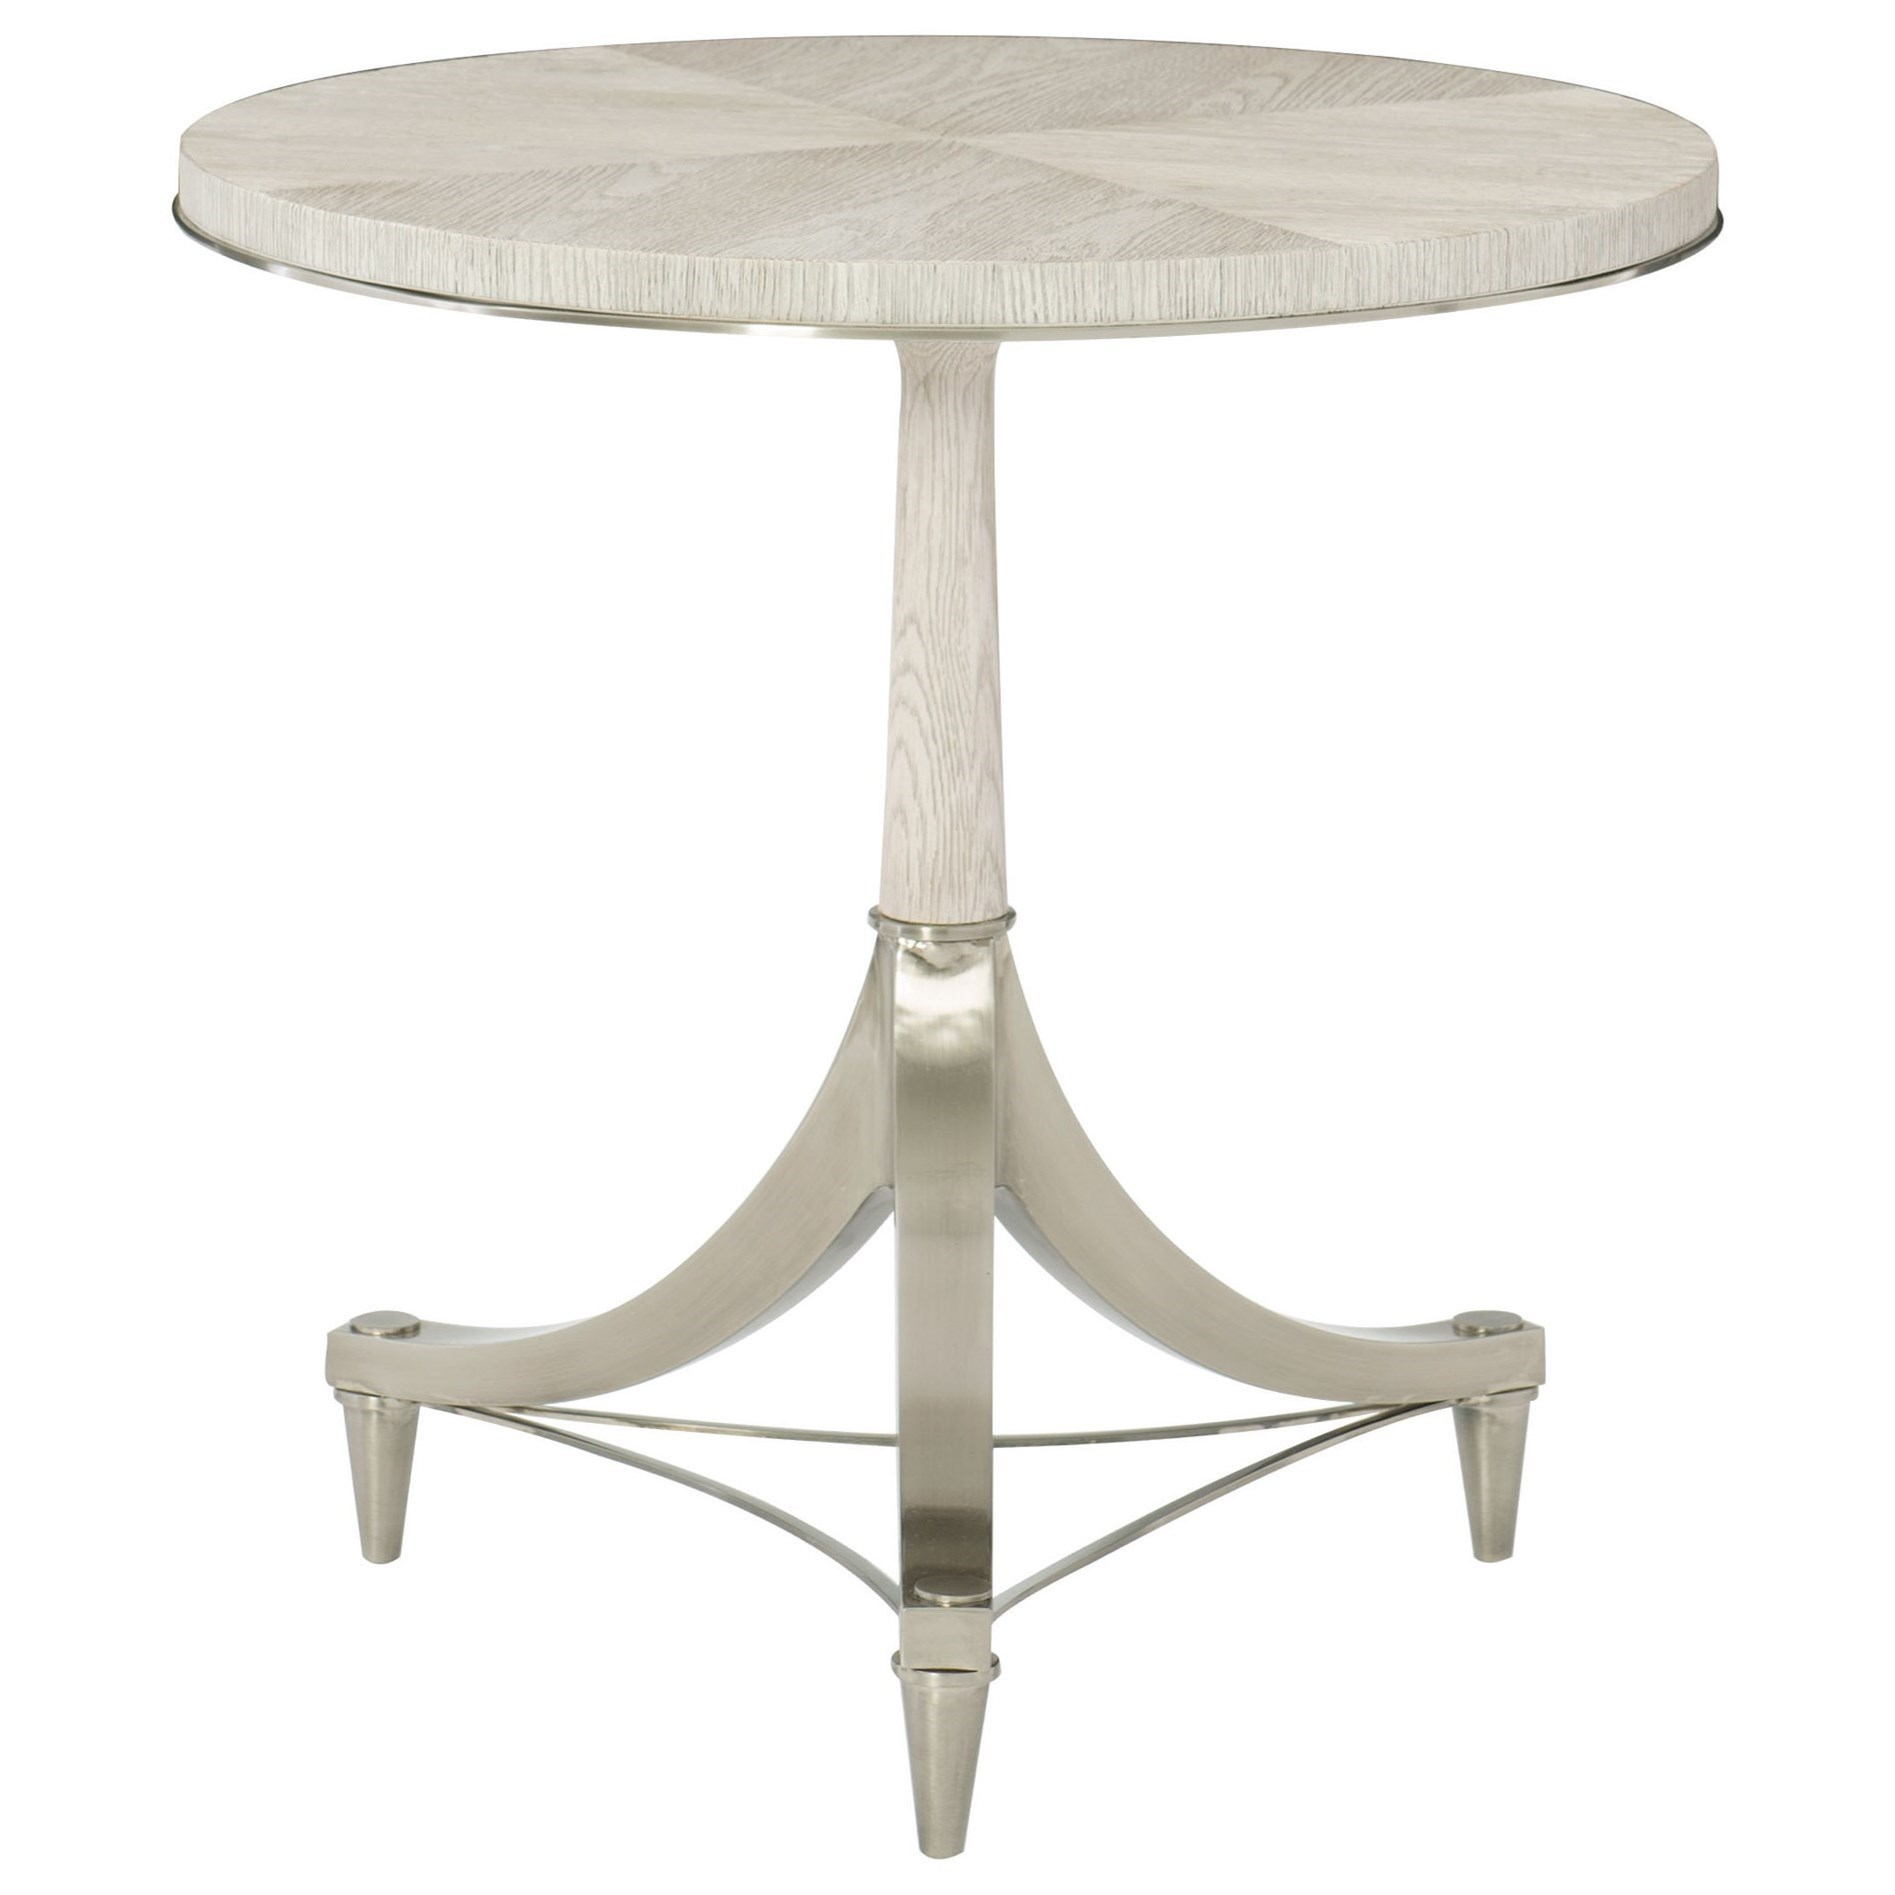 Domaine Blanc Round Pedestal Chairside Table by Bernhardt at Fisher Home Furnishings